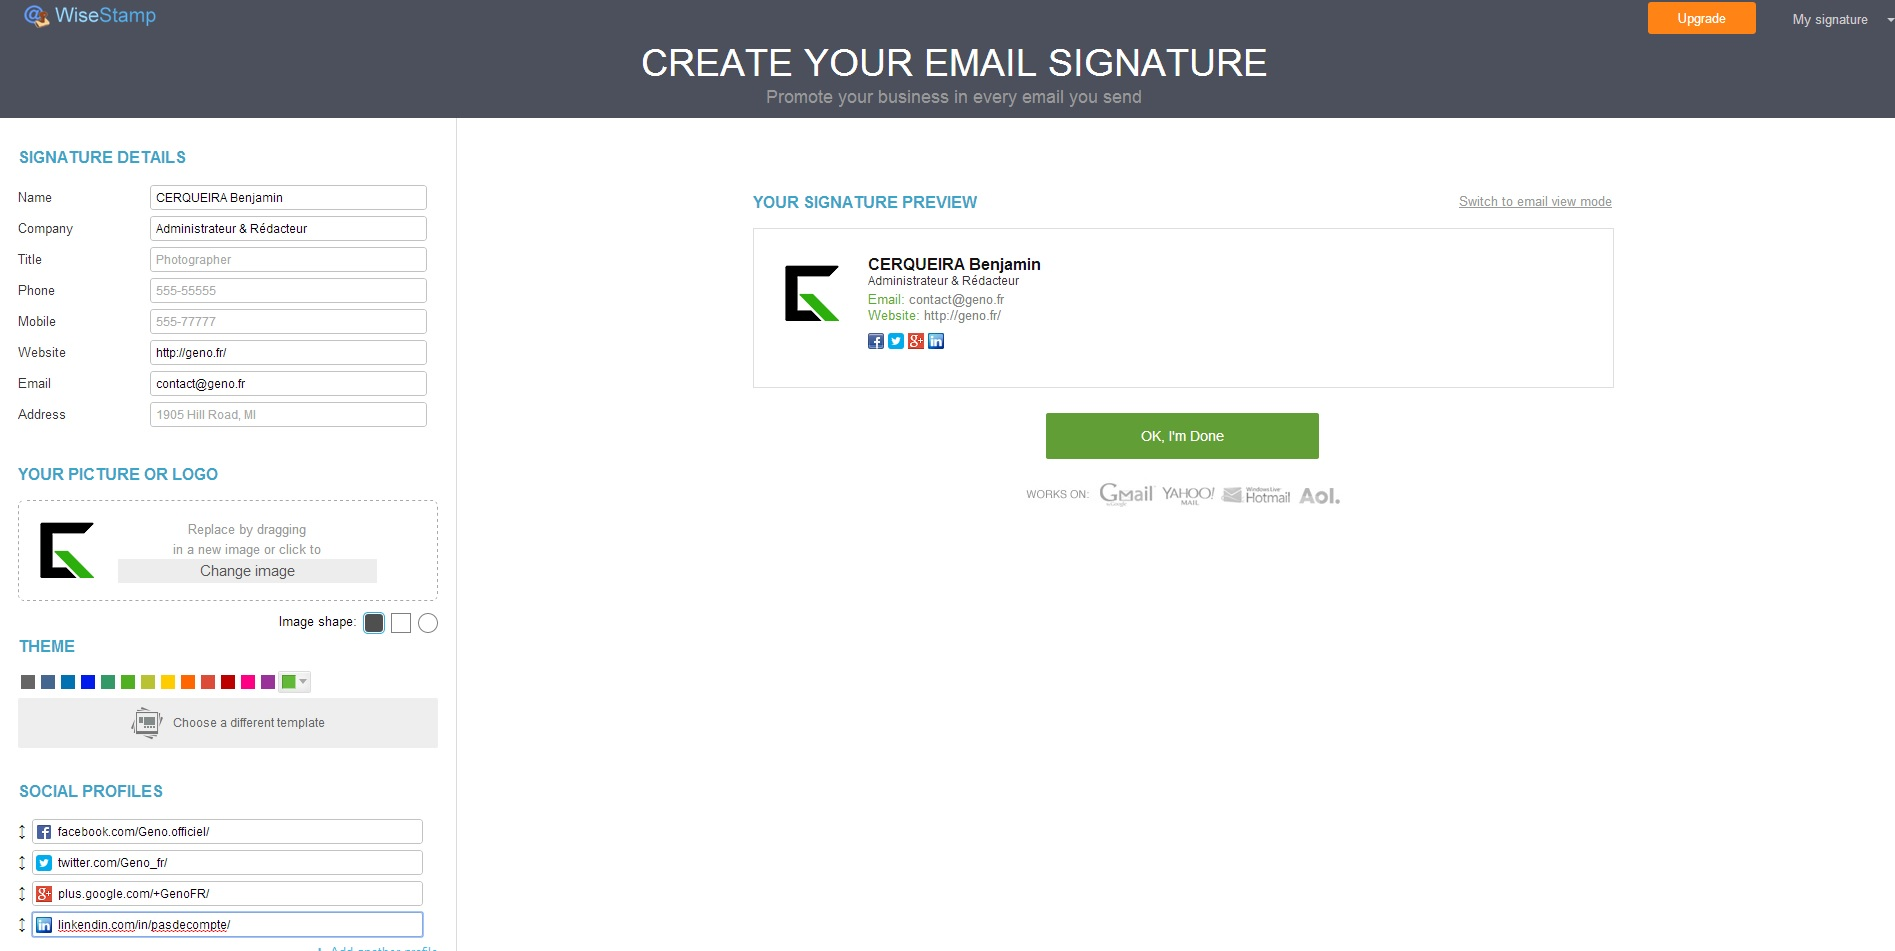 creer-signature-e-mail-dynamique-wisestamp